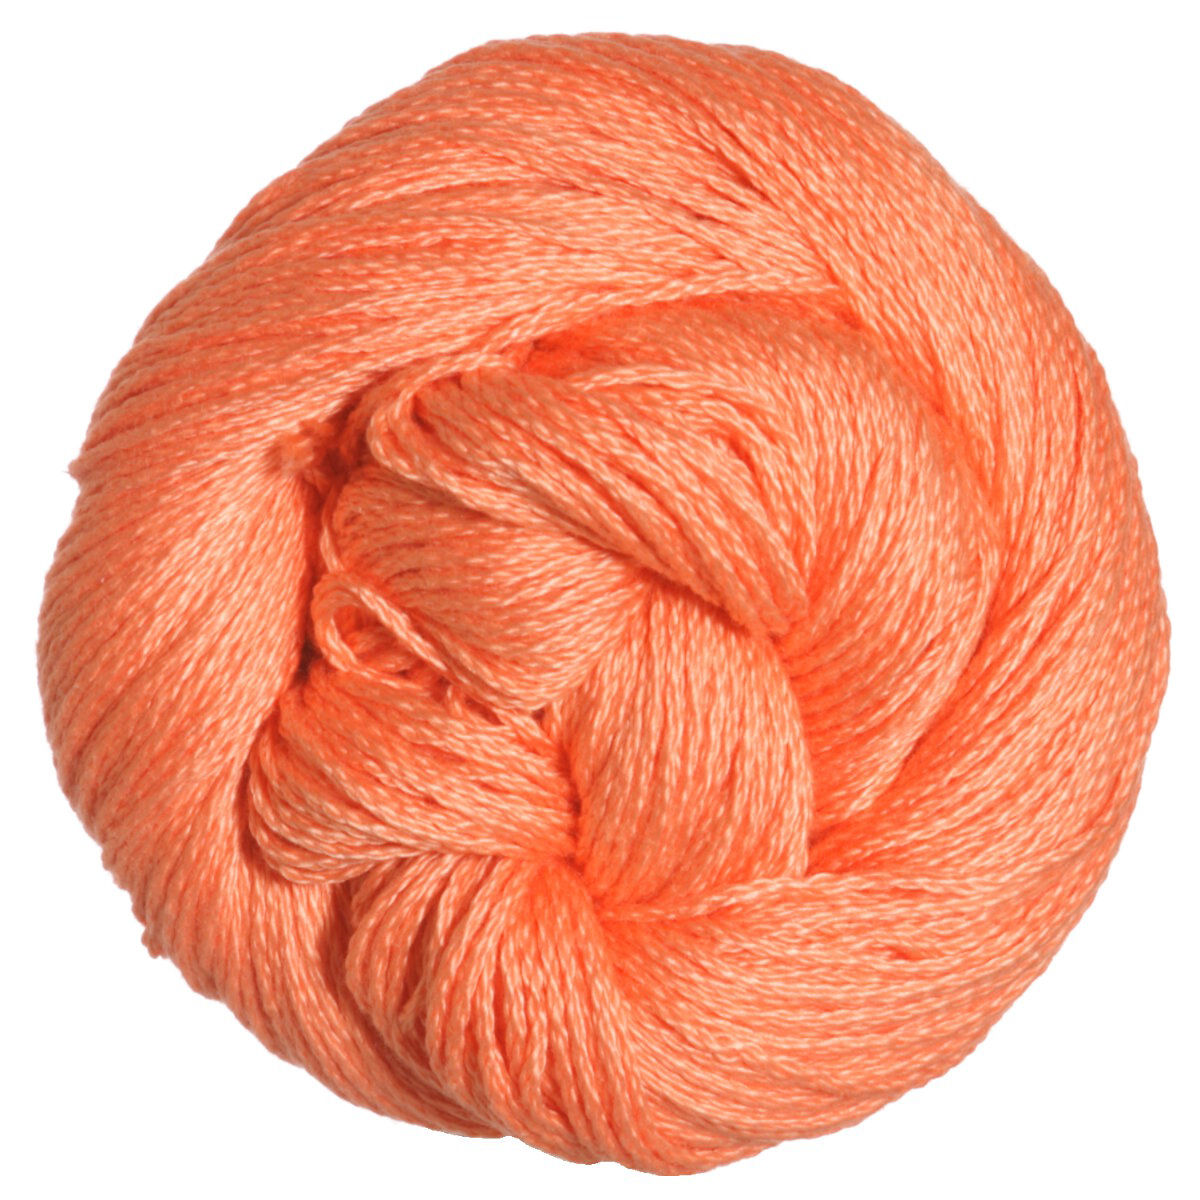 Plymouth Cleo Yarn 0121 Apricot At Jimmy Beans Wool